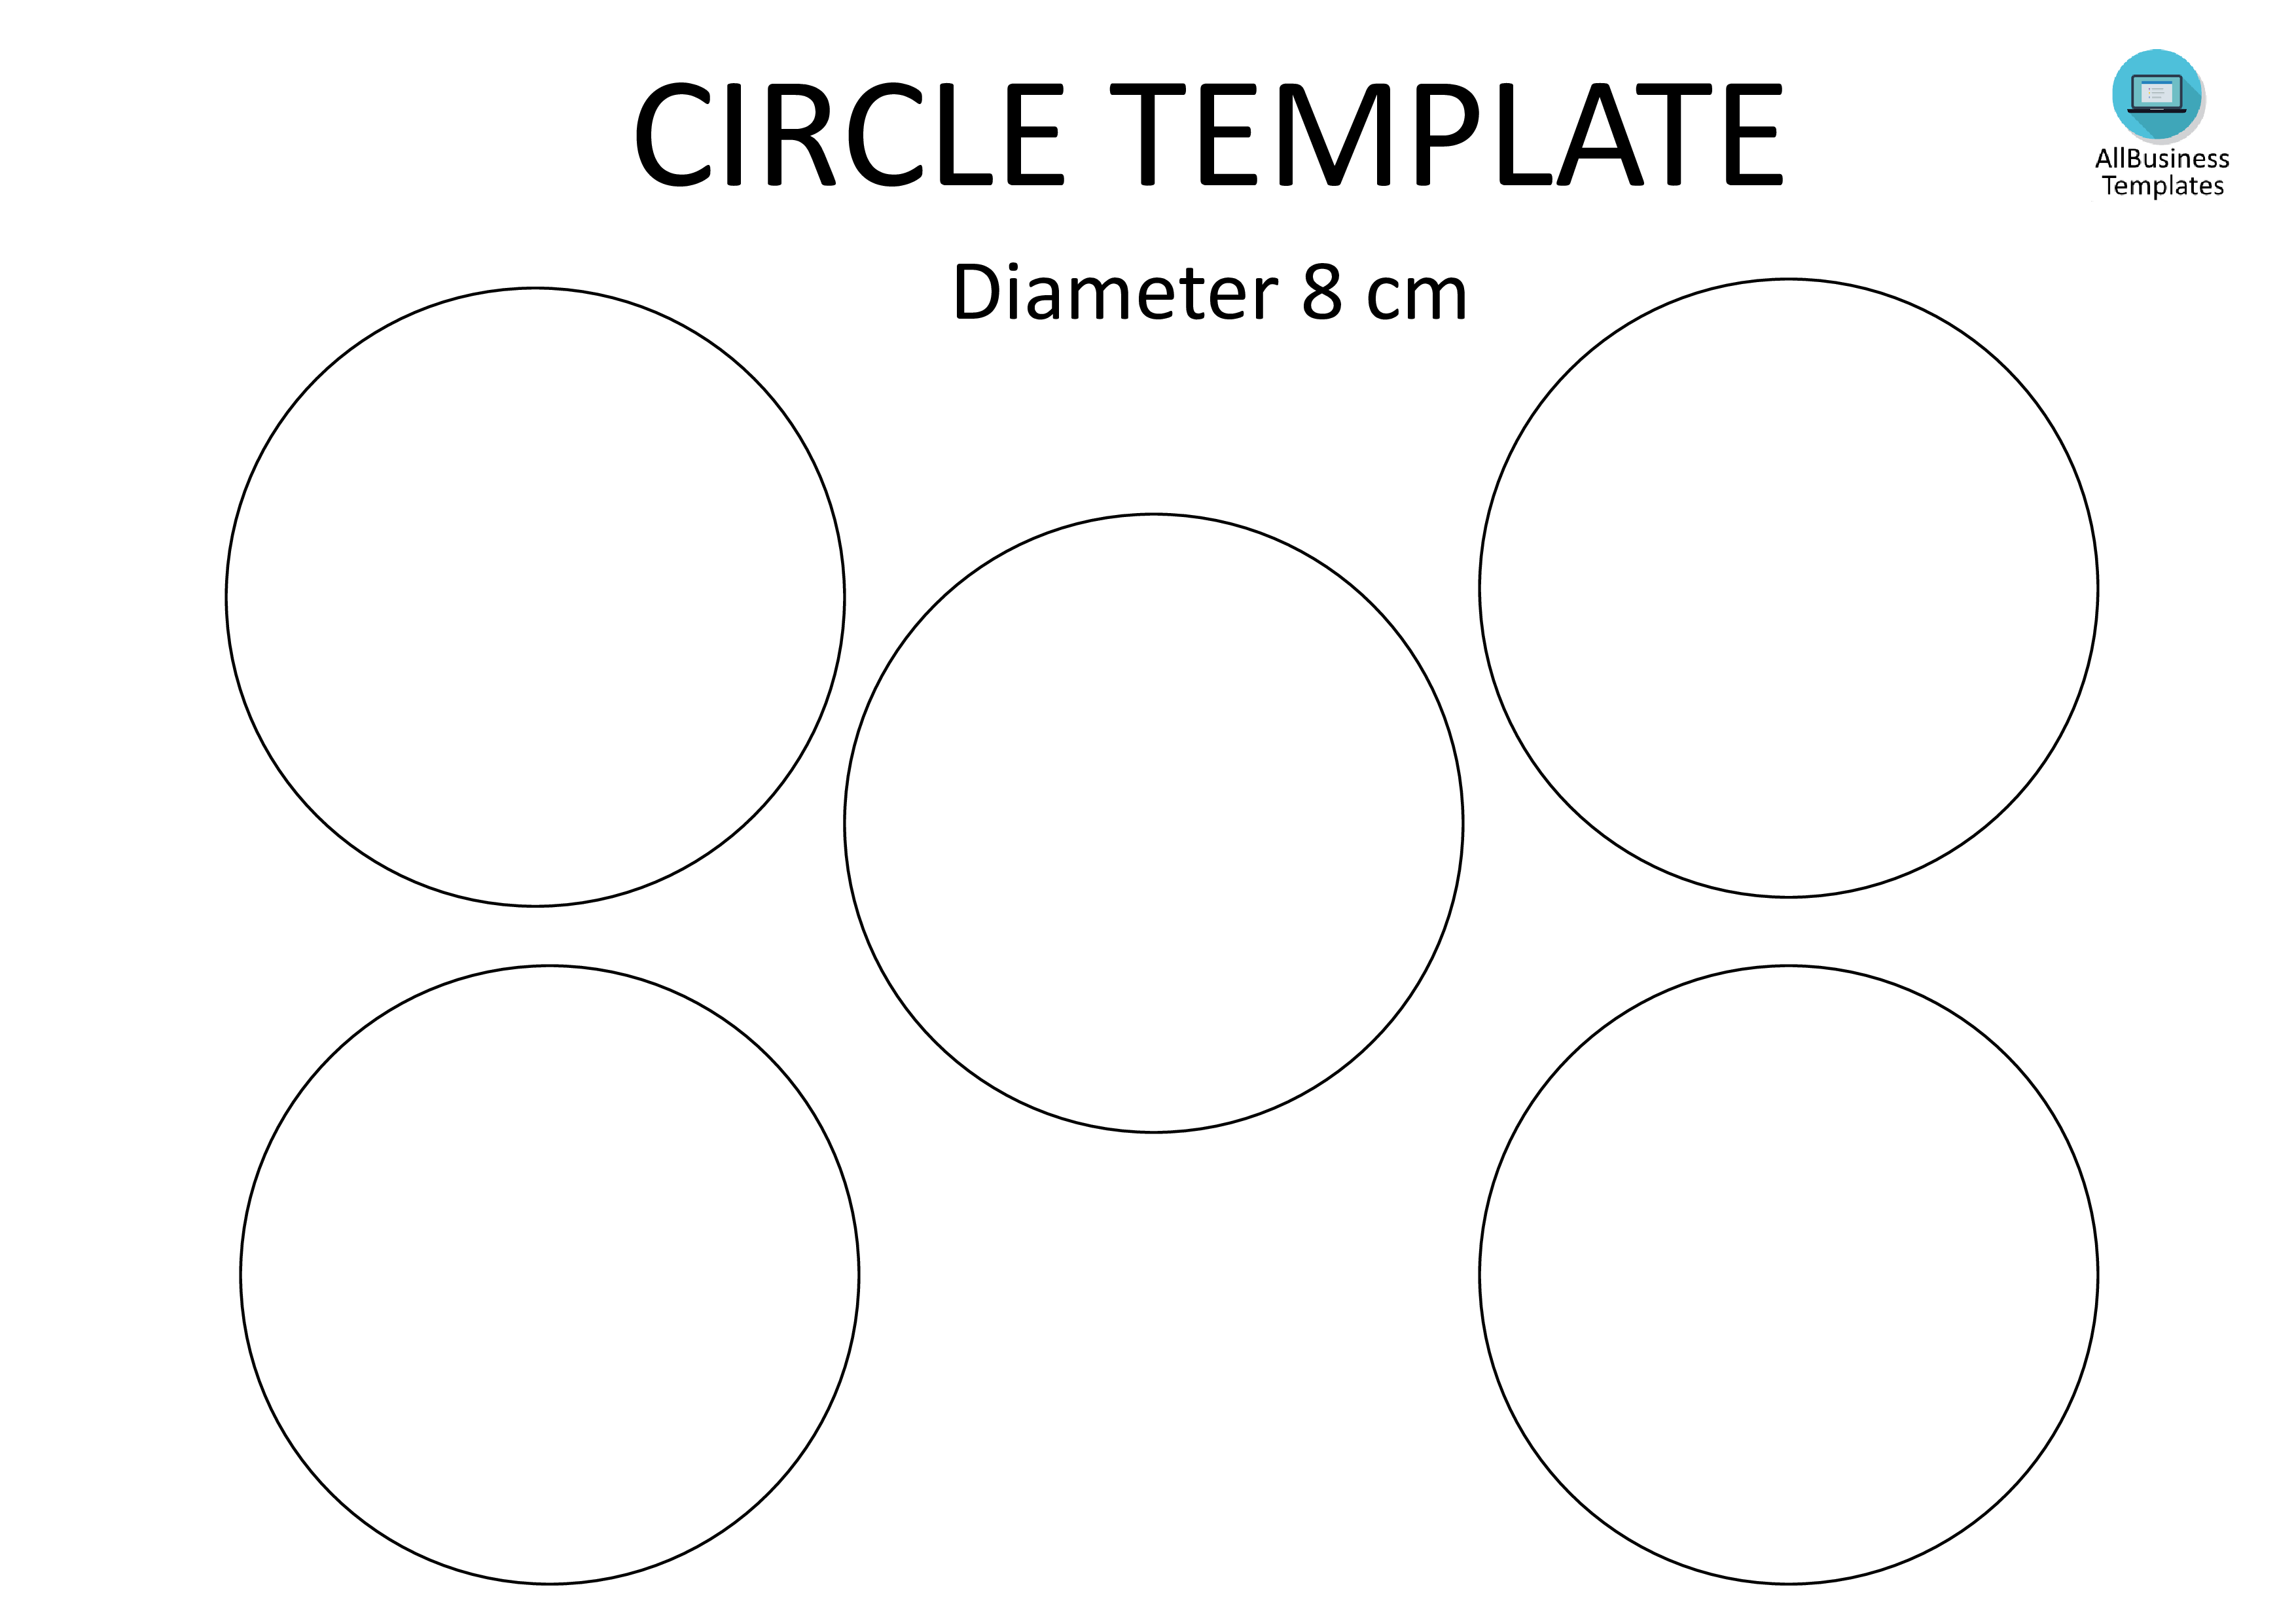 Circle template a4 8cm do you need a 8 cm diameter circle template circle template a4 8cm do you need a 8 cm diameter circle template download ccuart Image collections